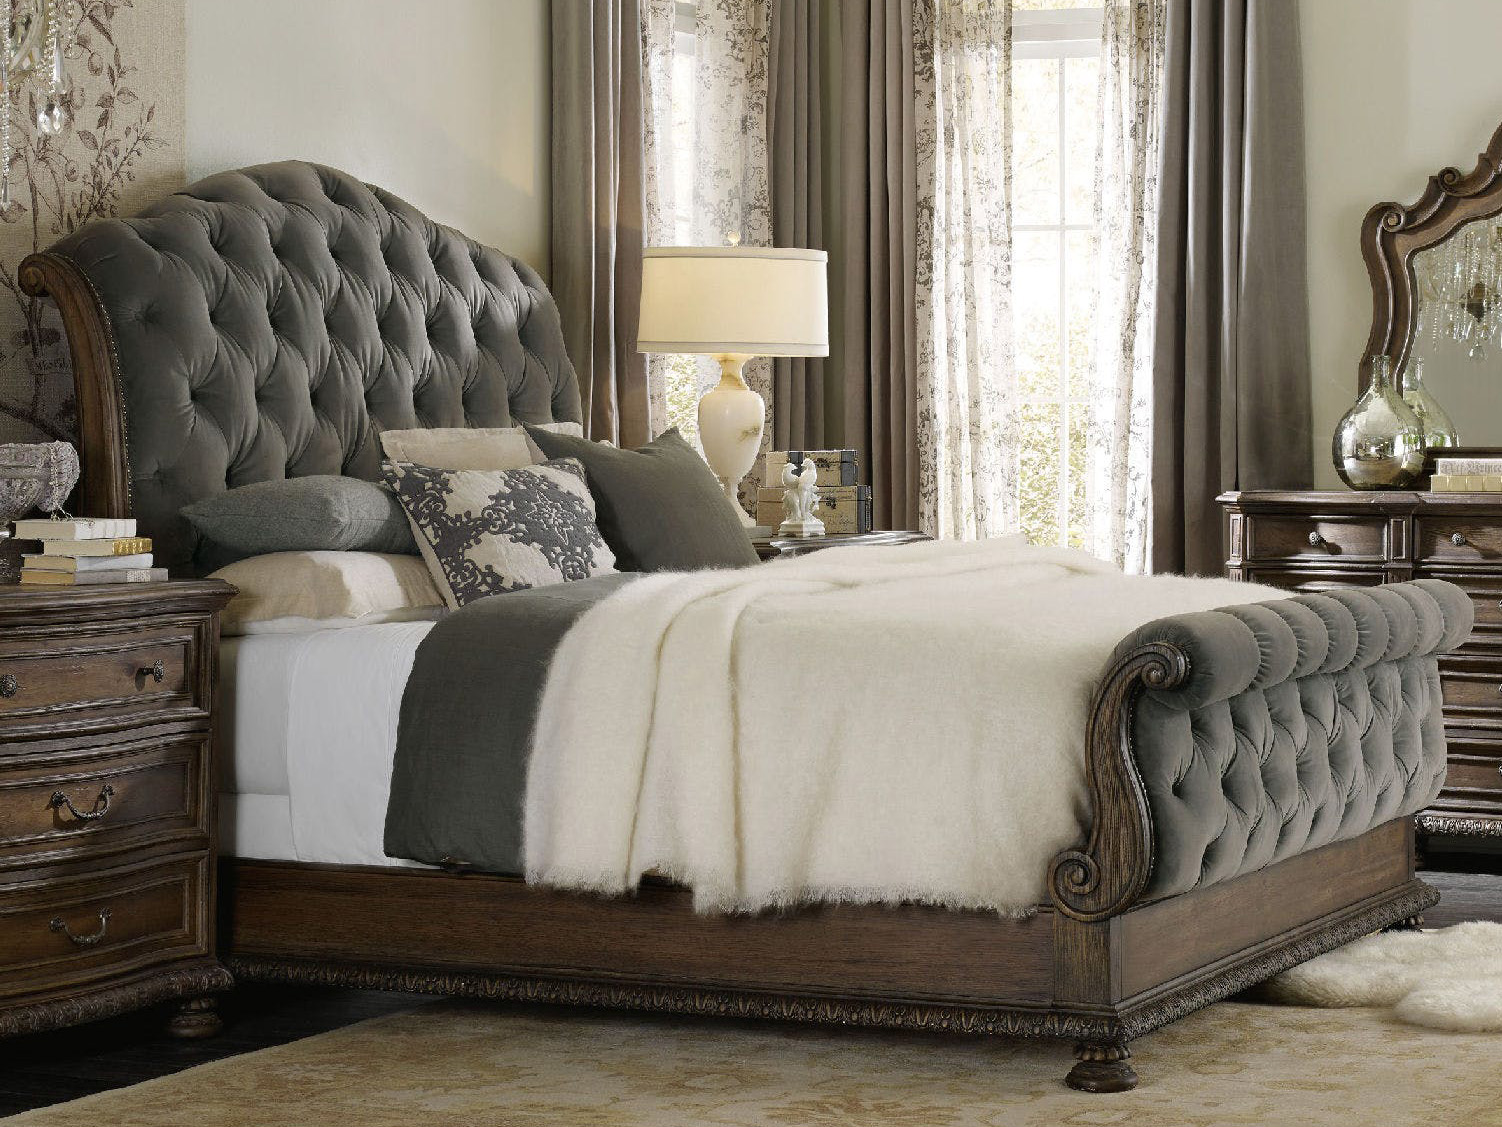 Tufted sleigh bed design idea